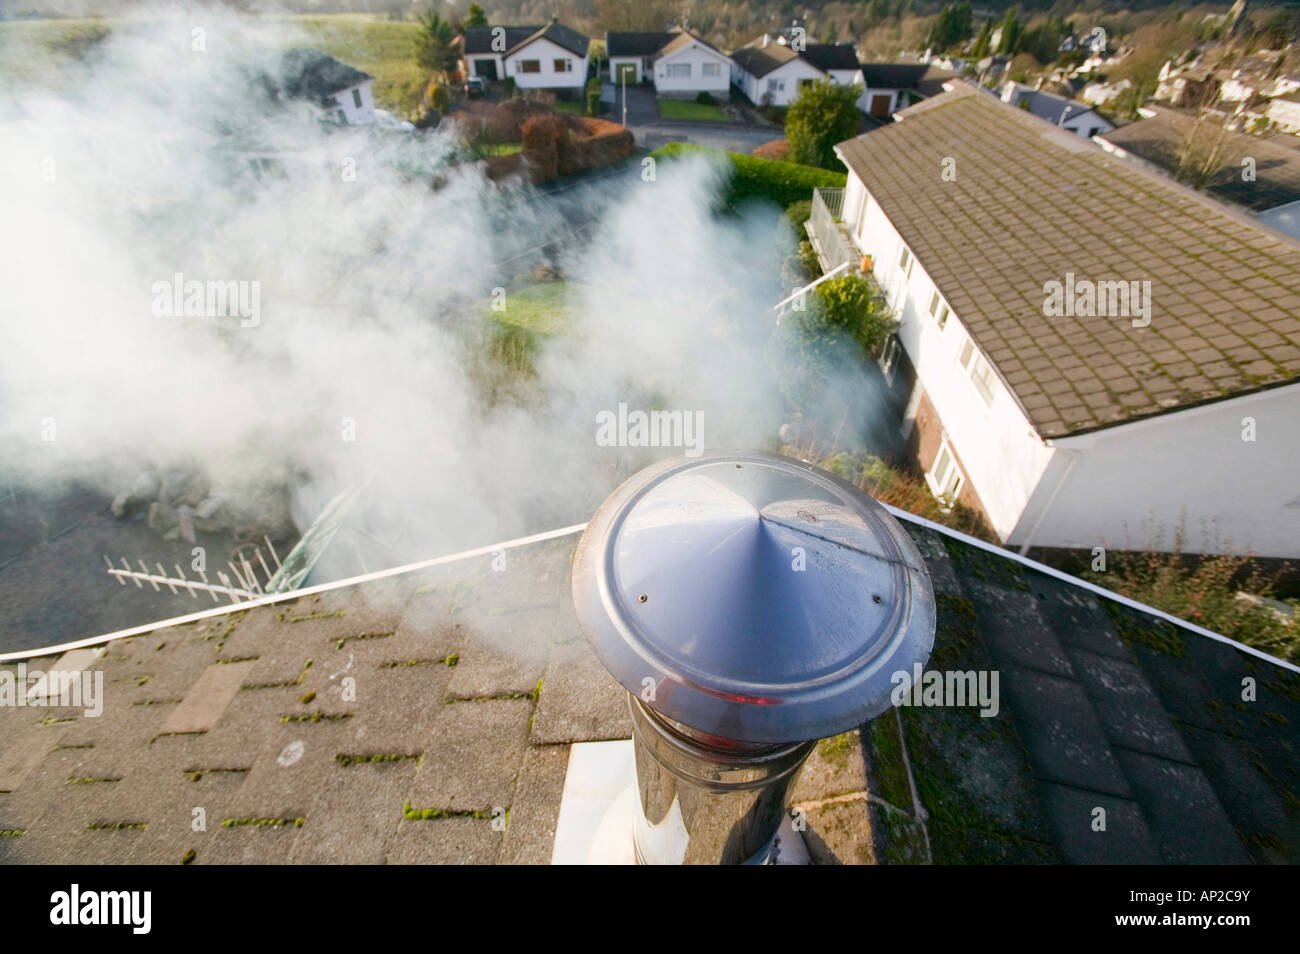 A household chimney emmiting smoke Stock Photo